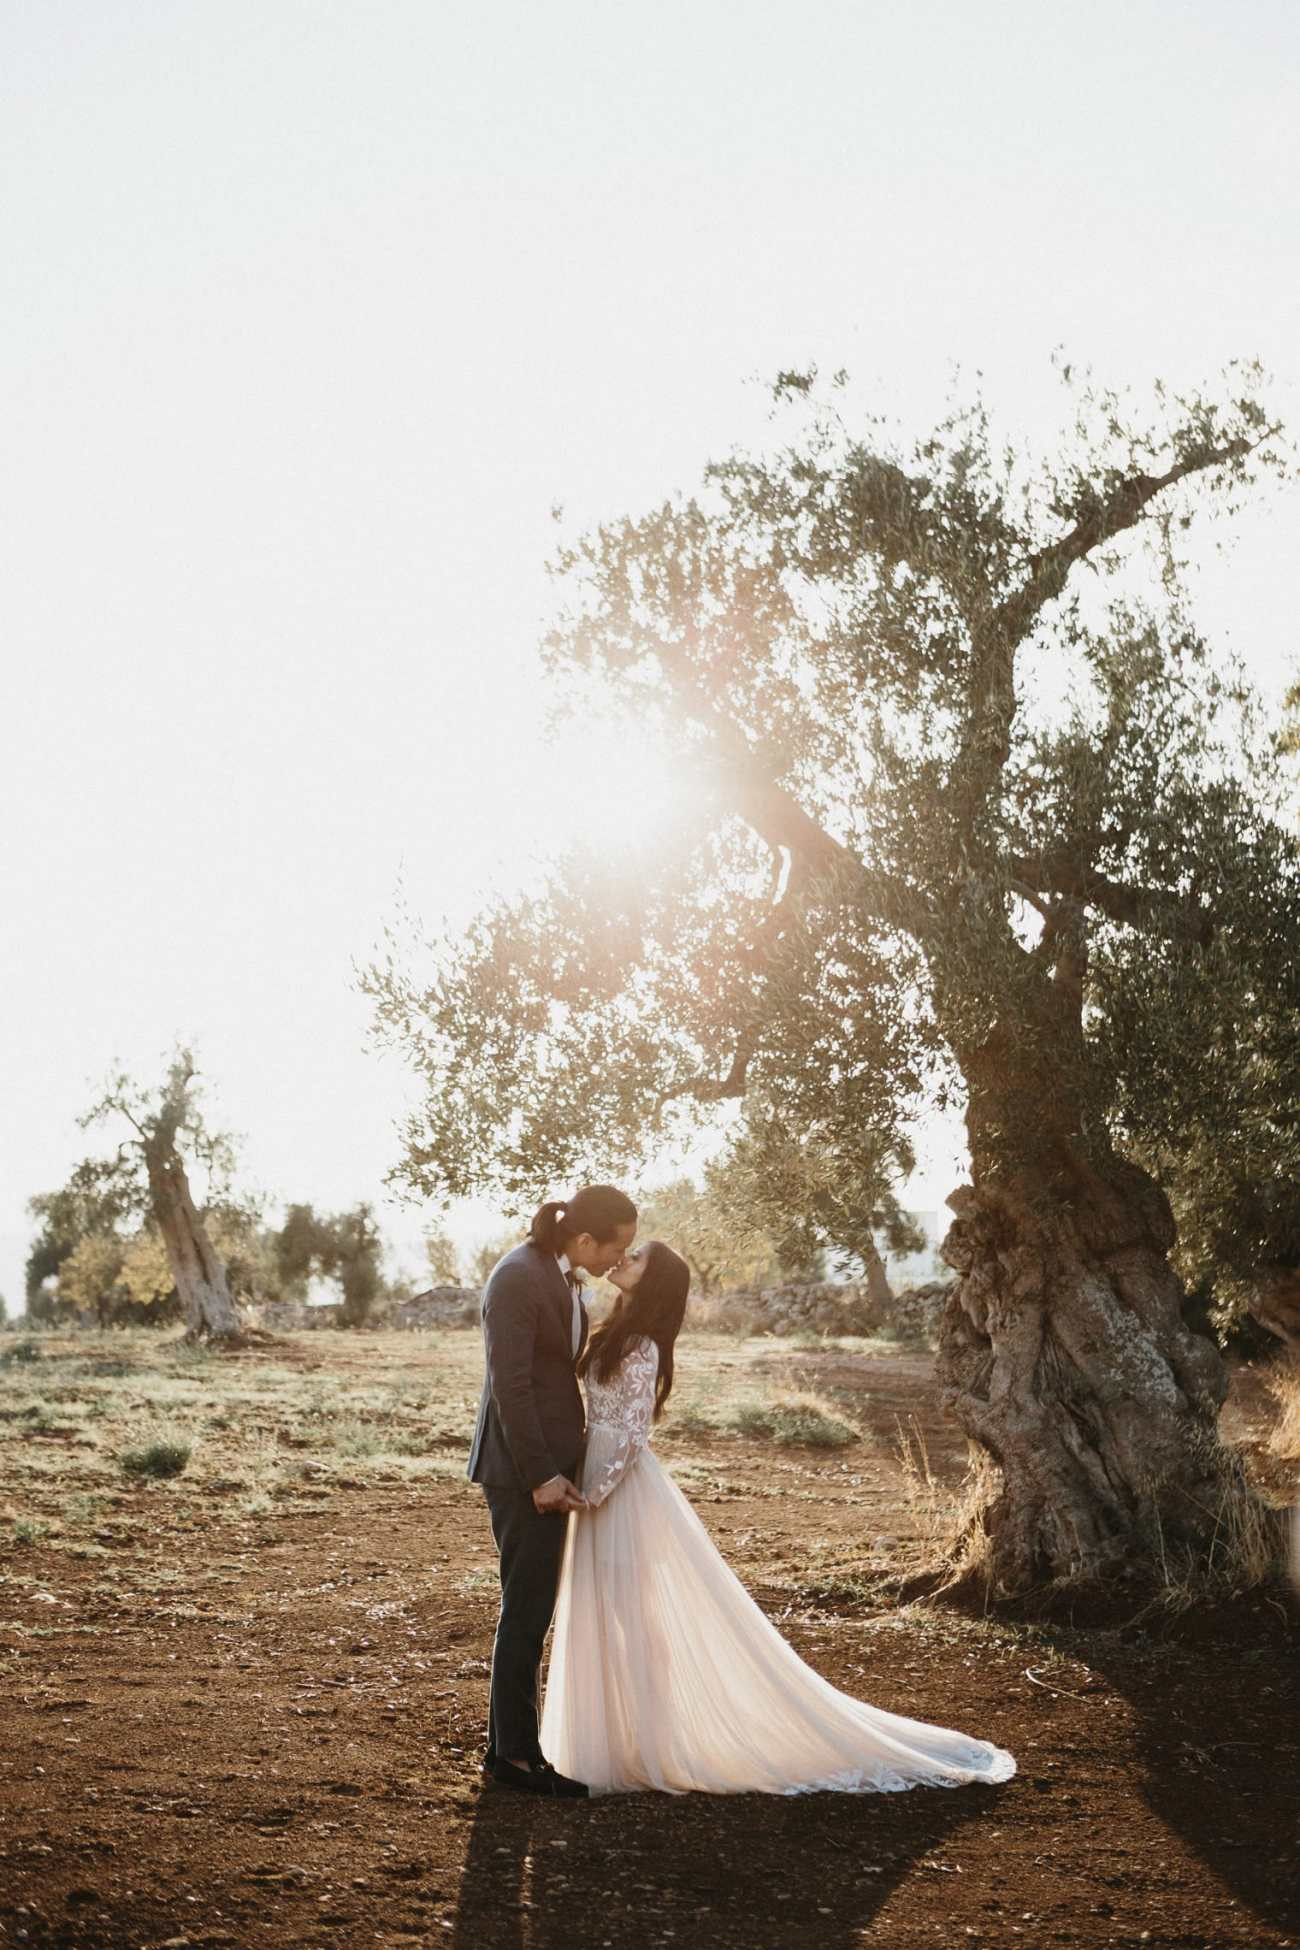 Bride and groom share an intimate moment in Italy during their wedding, in an italian olive field at sunset